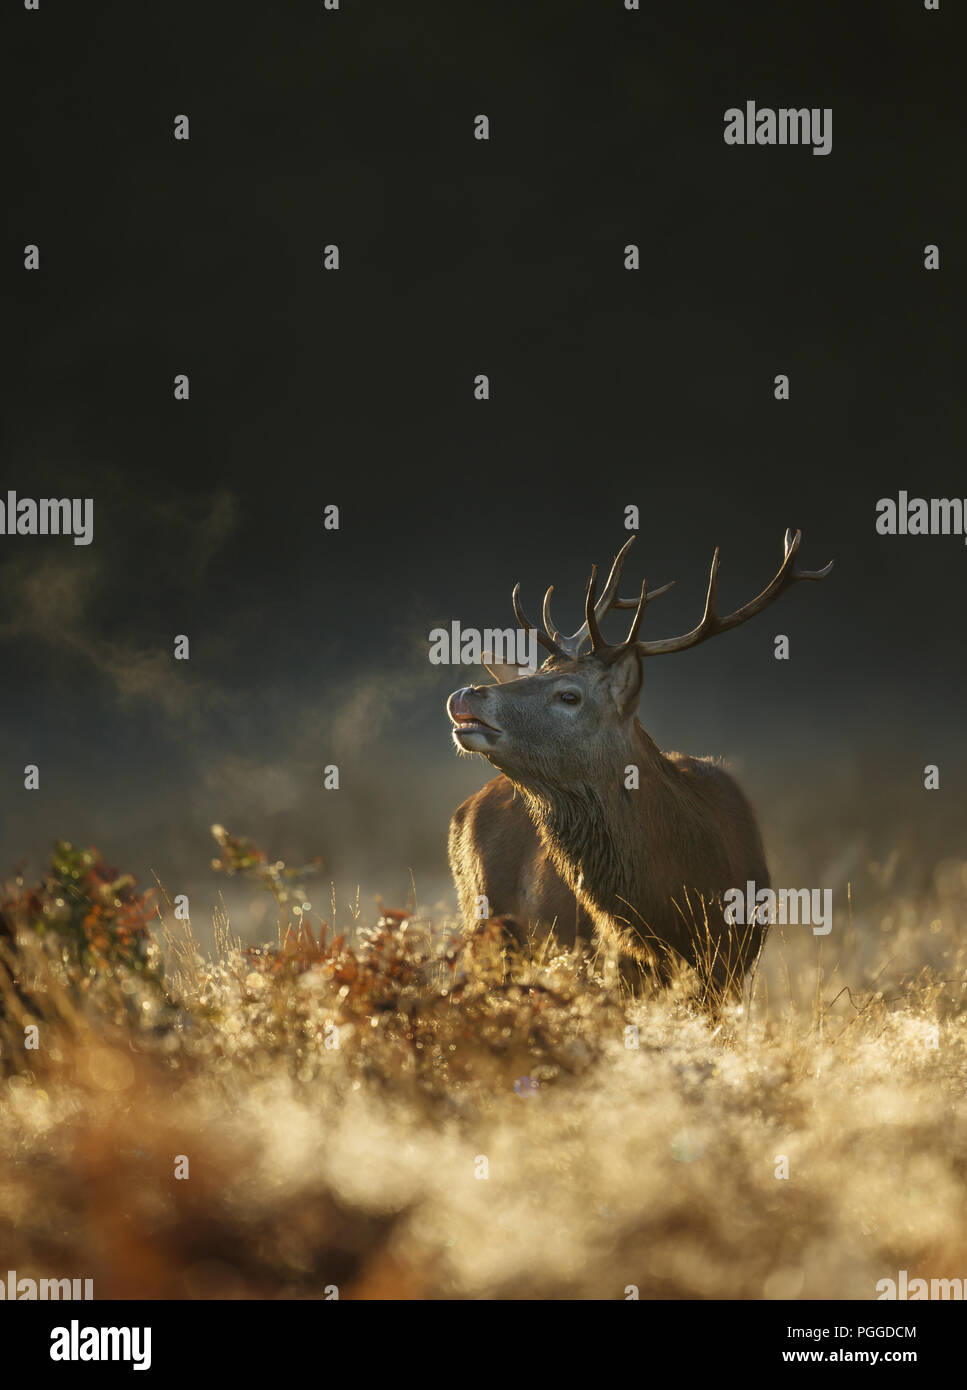 Red deer at dawn on a foggy autumn morning during a rutting season, UK. - Stock Image